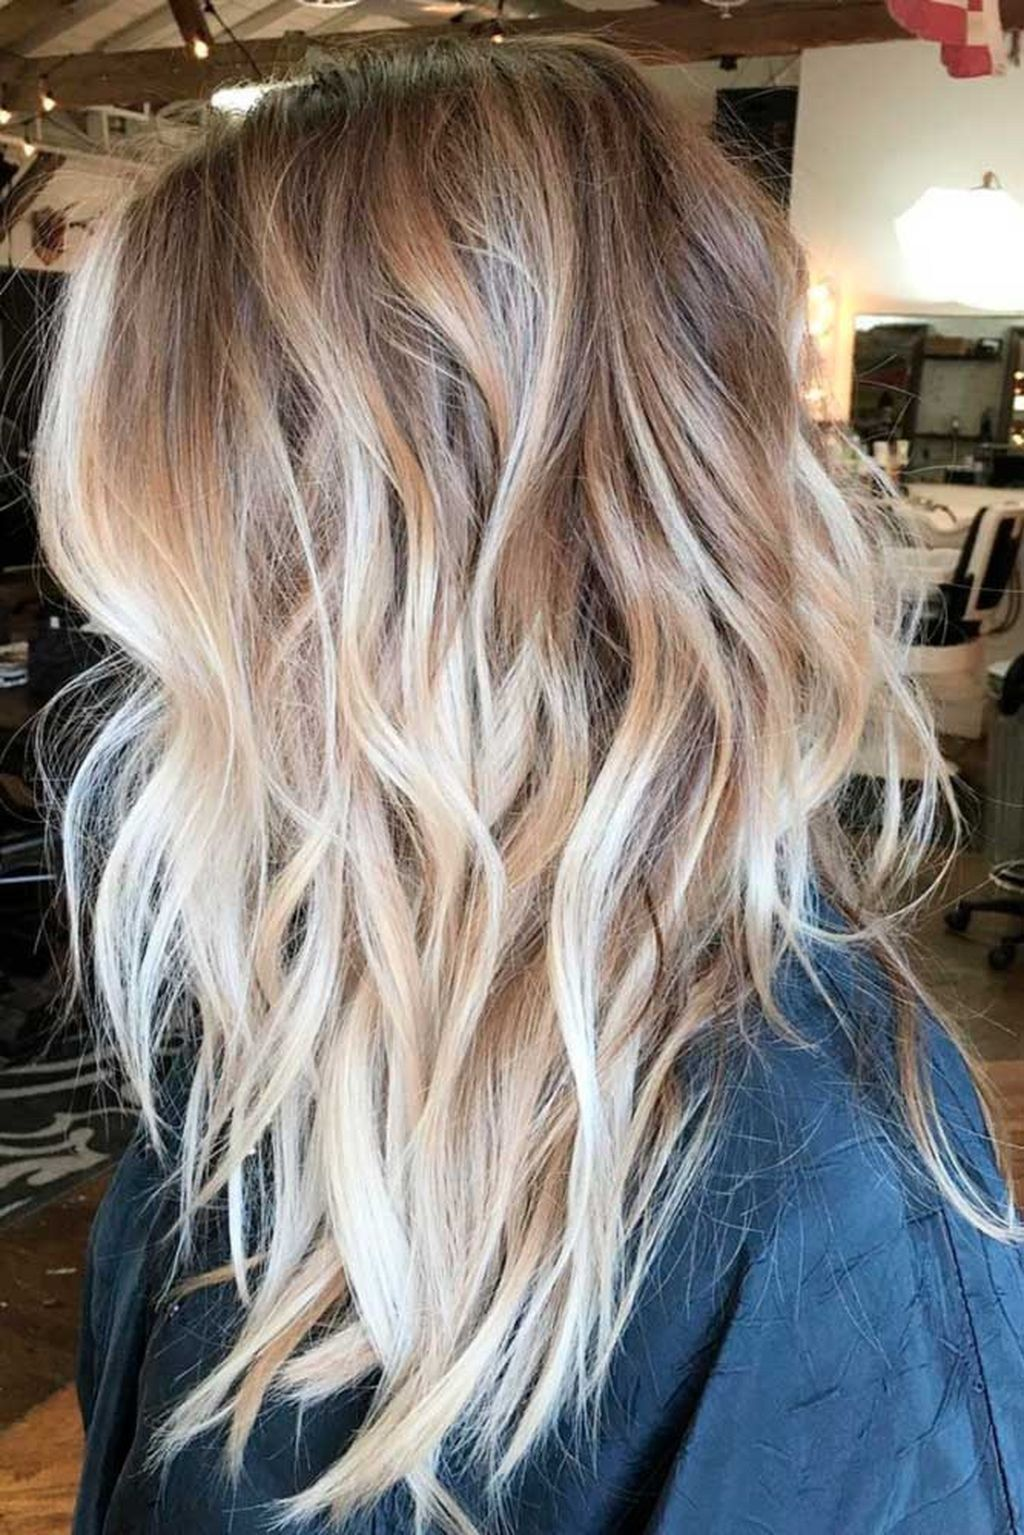 Stunning fall hair color ideas  trends   Hair coloring Hair